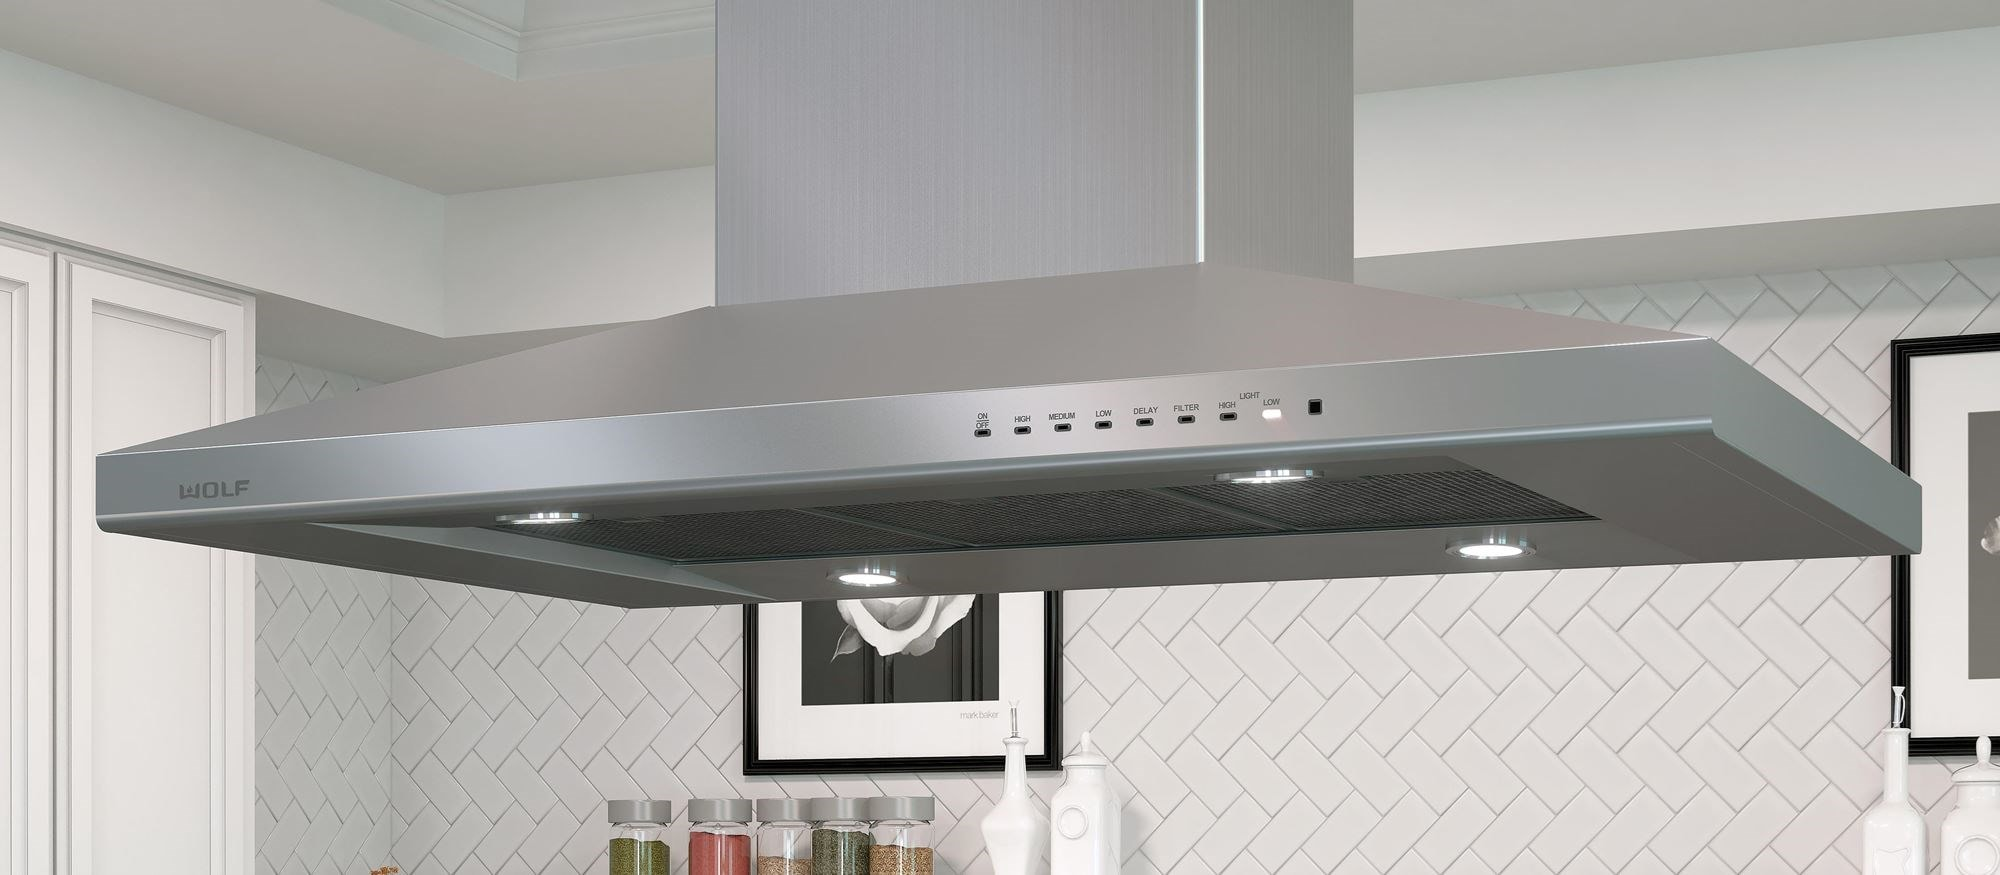 "Wolf 42"" Cooktop Island Hood - Stainless (VI42S)"